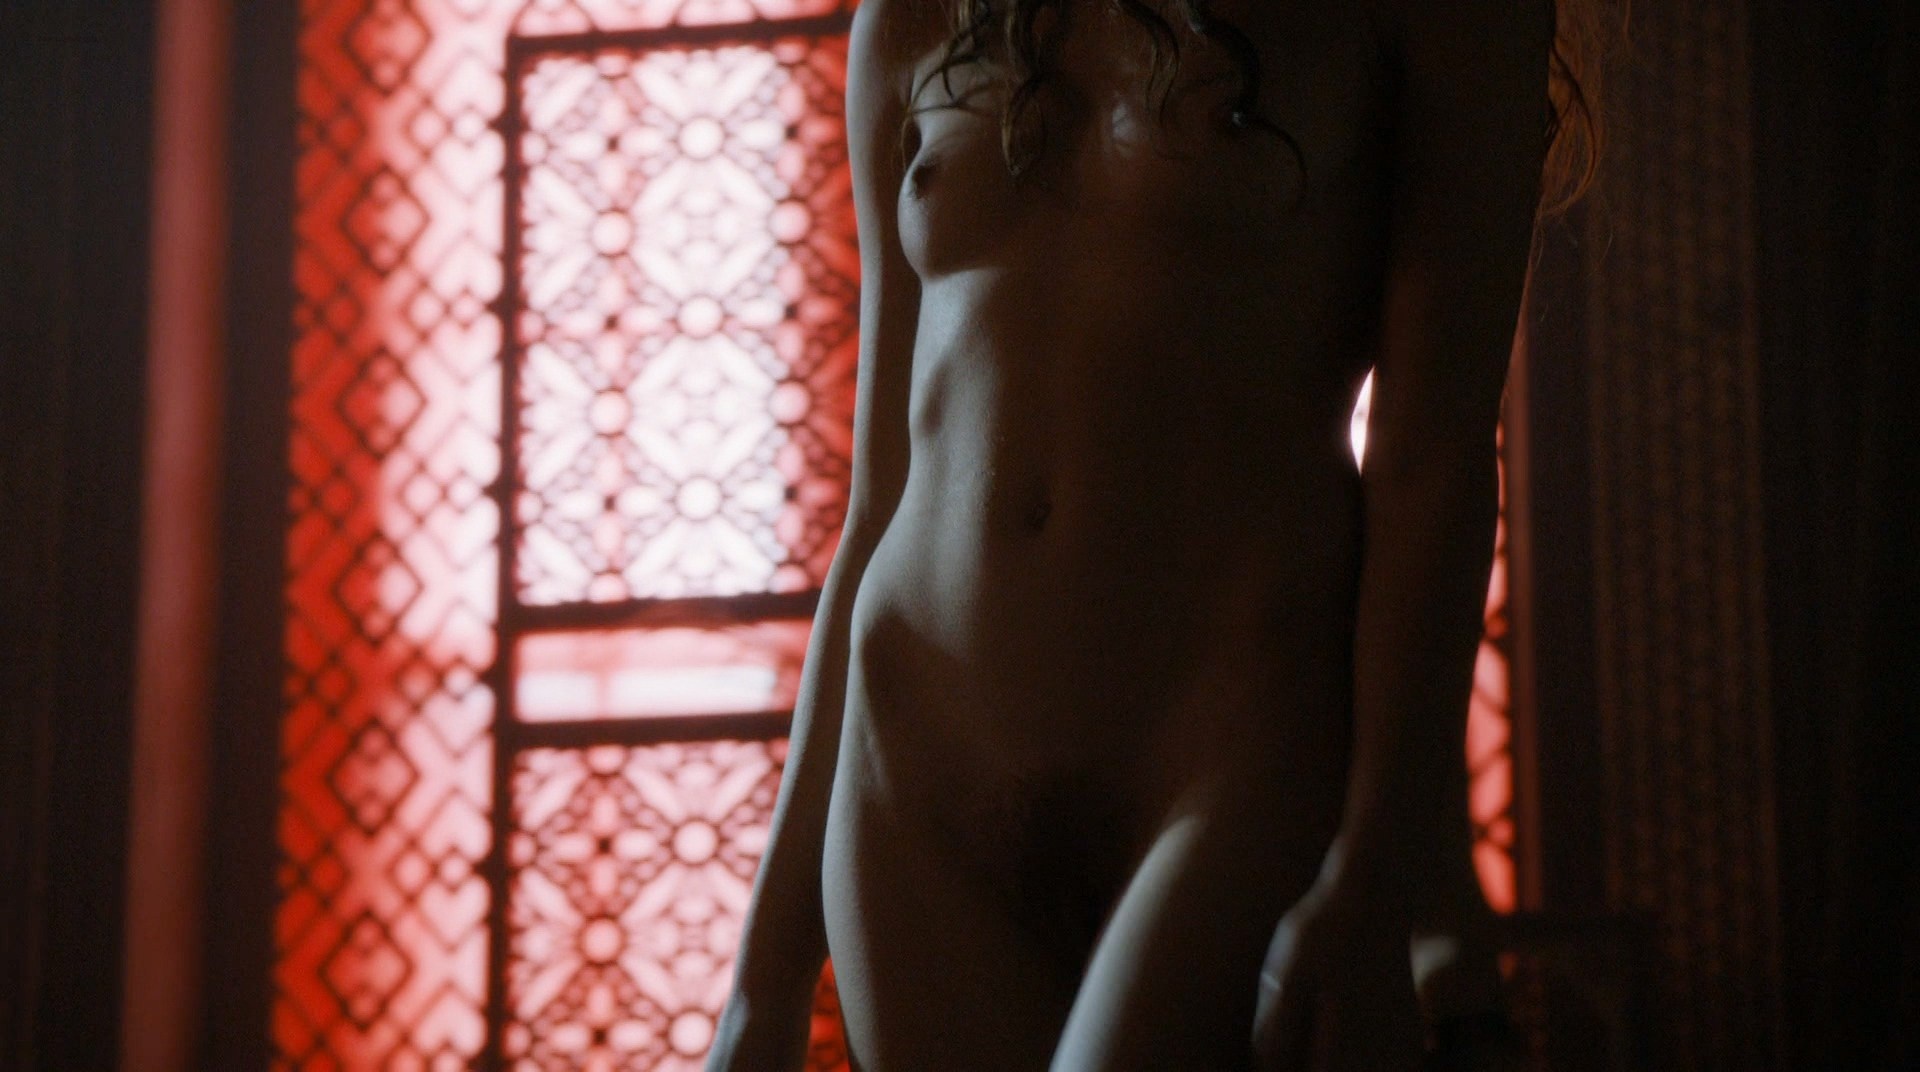 0313180242692_05_Natalie-Dormer-hot-nipple-others-nude-full-frontal-Game-Of-Thrones-2015-s5e3-hd720-1080p6.jpg